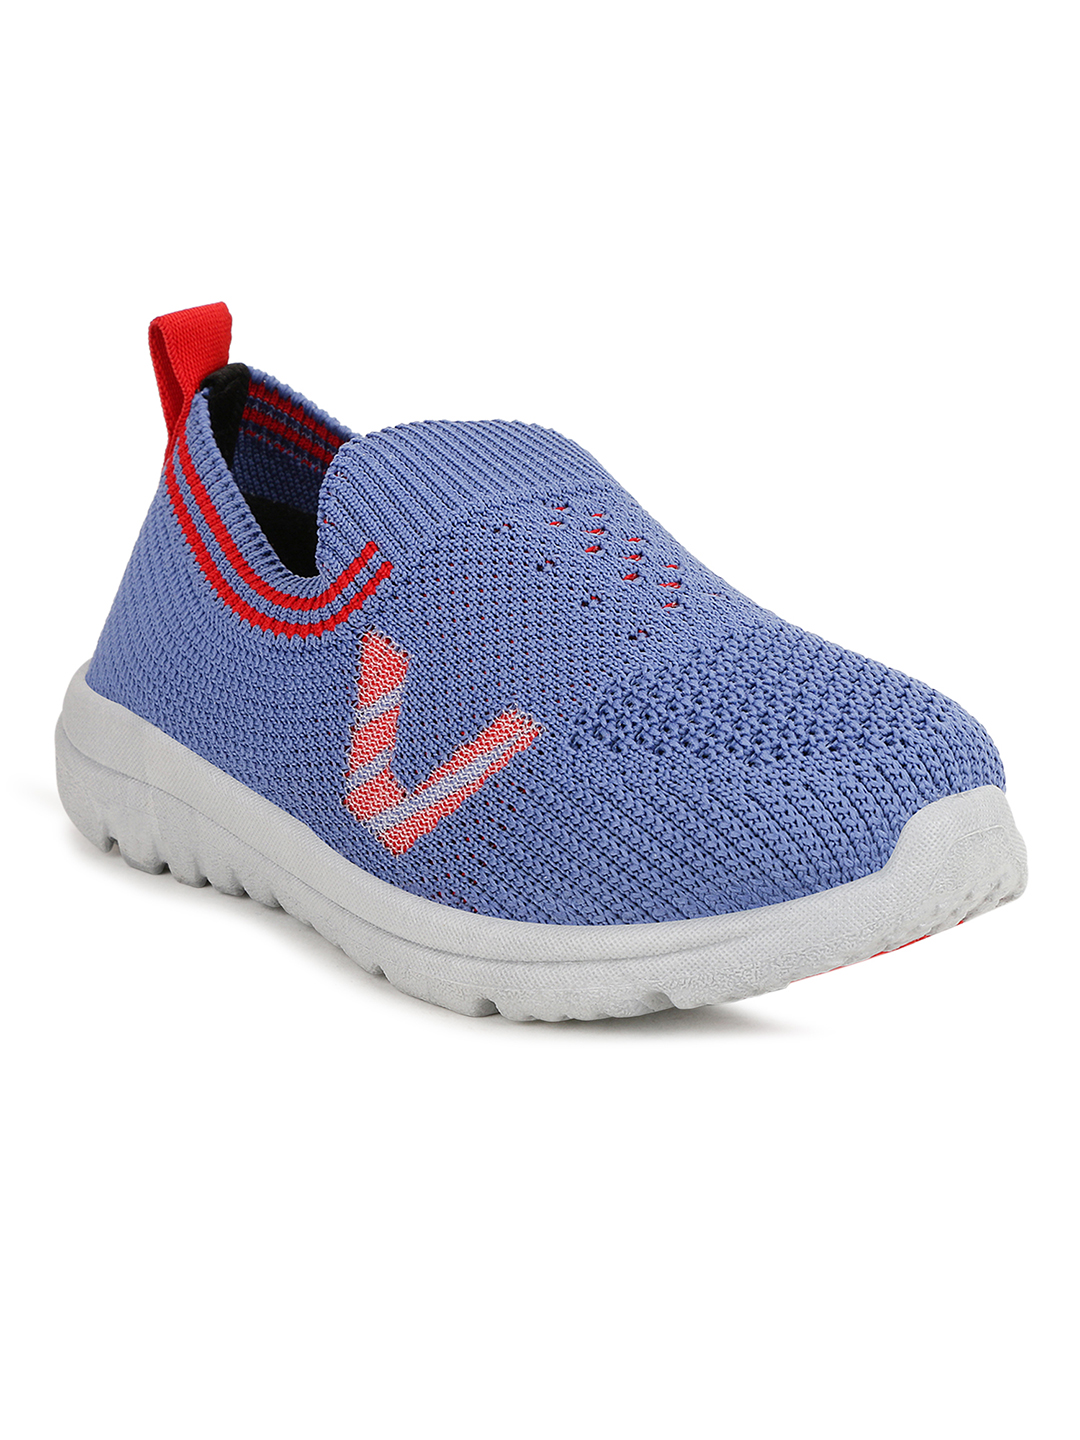 Campus Shoes   Blue Running Shoes